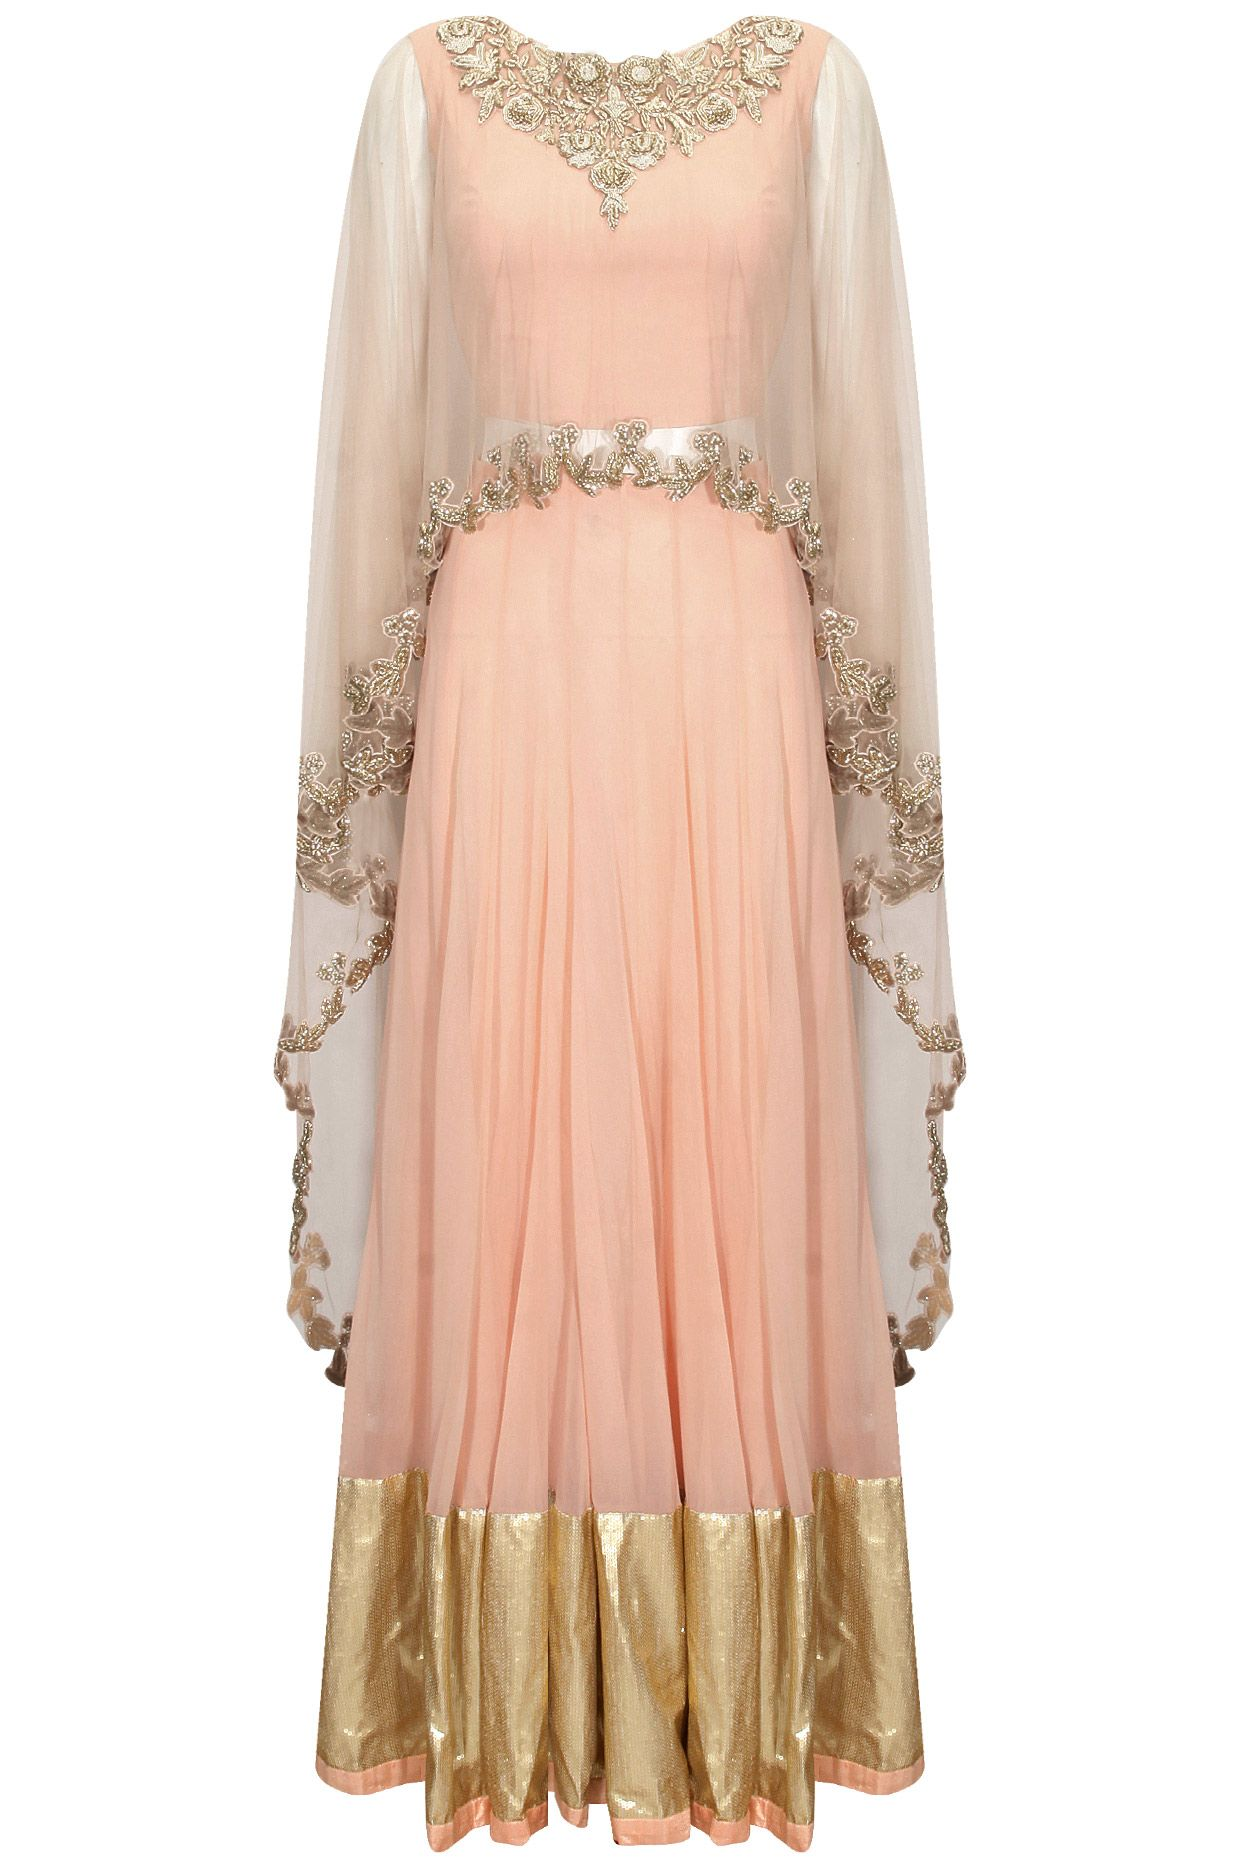 3c9d7918b084 Pink embroidered asymmetric cape blouse with gold border lehenga available  only at Pernia's Pop-Up Shop.